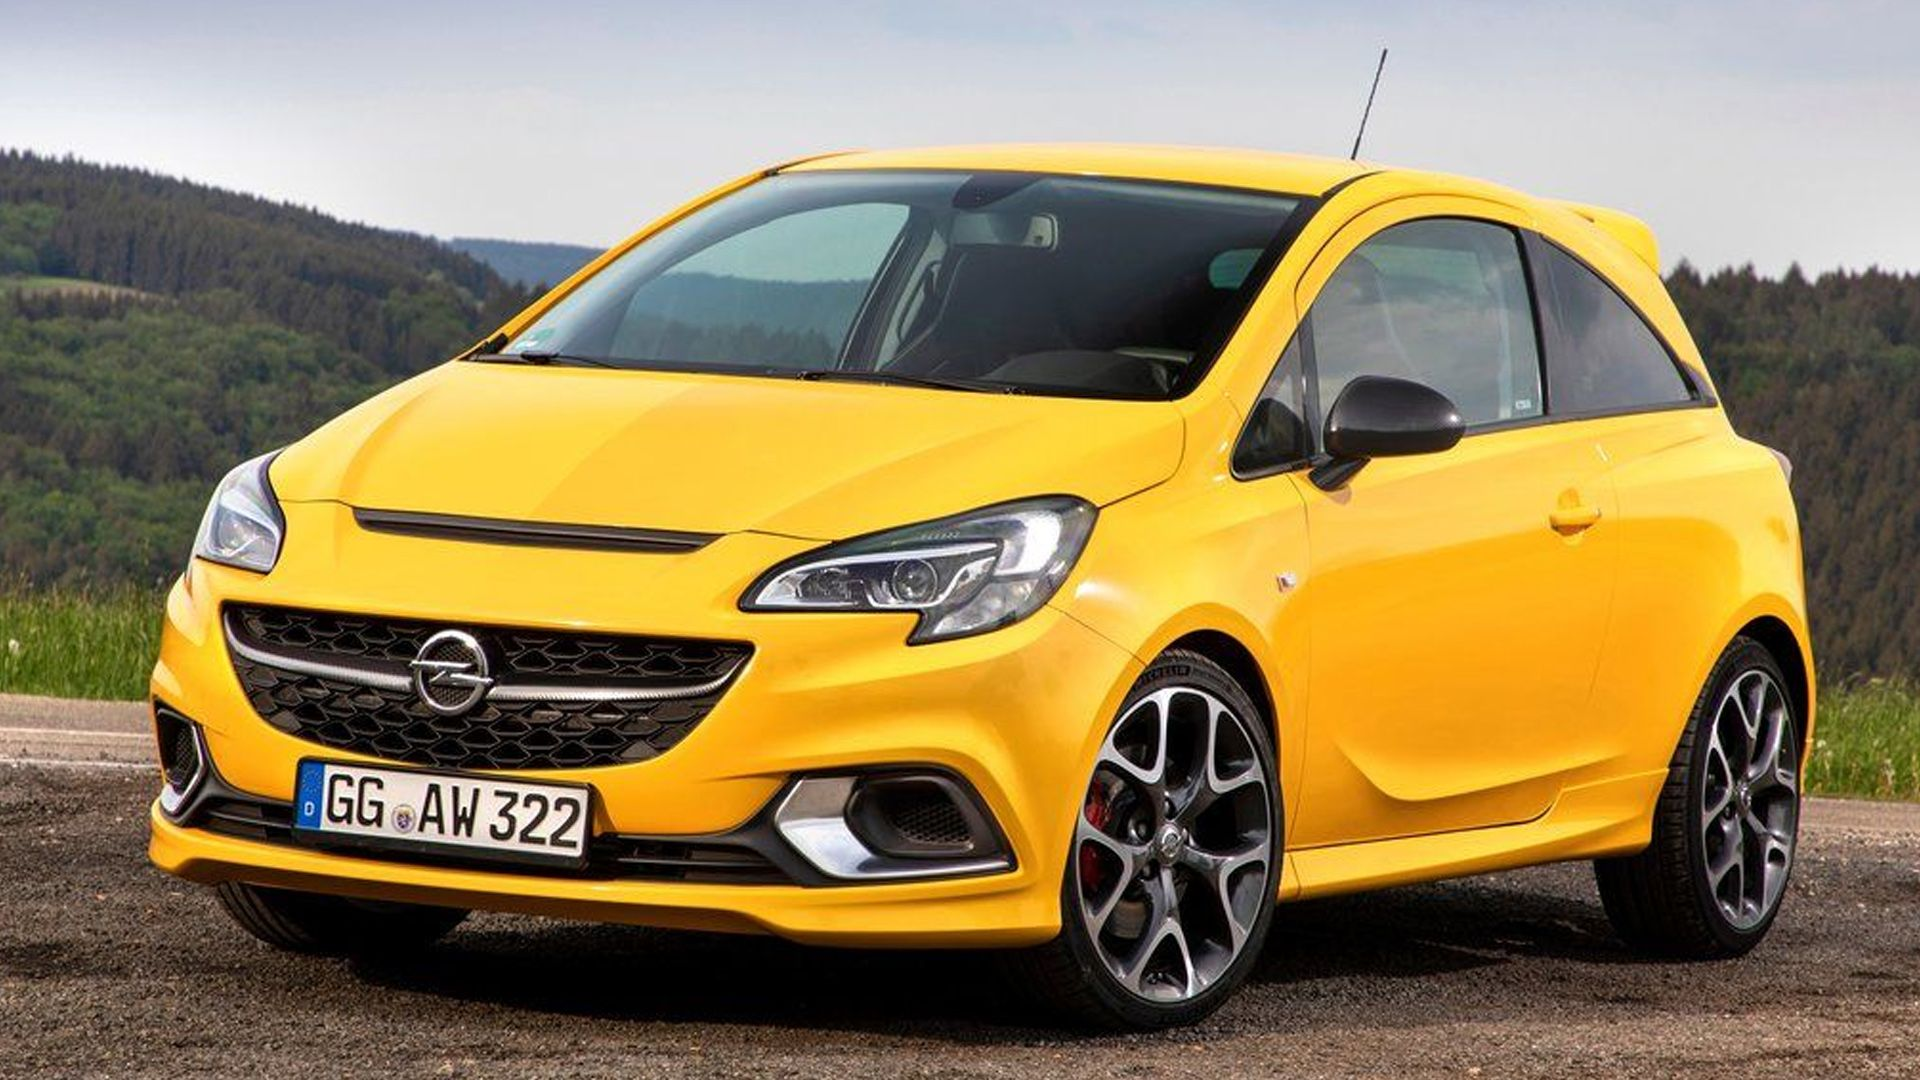 Opel Has Revealed The 5th Generation Of Its Best Selling Model The Opel Corsa Is One Of The Most Enduringly Popular Models In The B Avtomobil Dizajn Motocikl